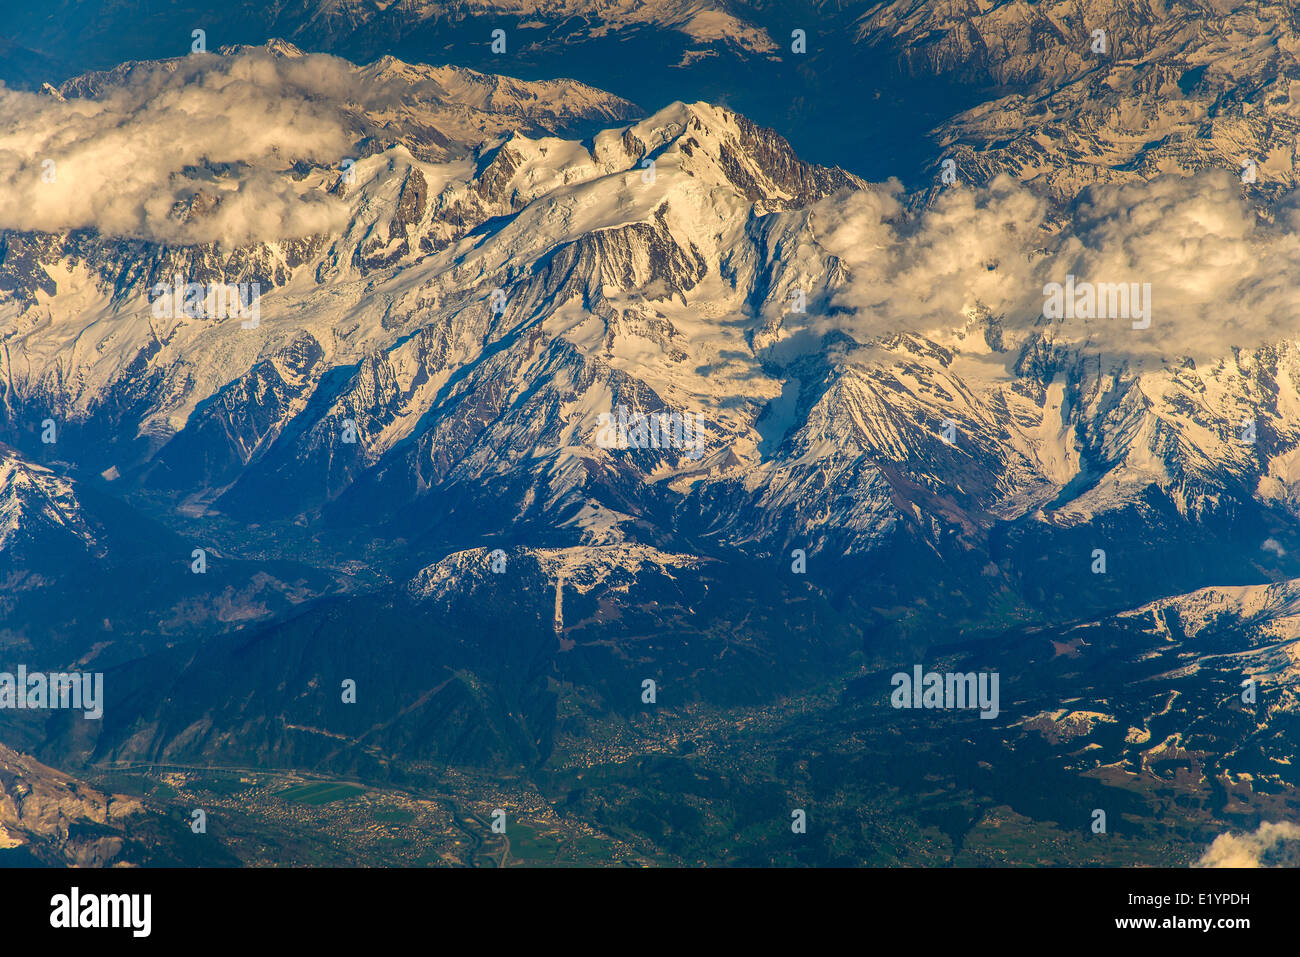 Aerial view of Mont Blanc massif, Rhone-Alpes, France - Stock Image